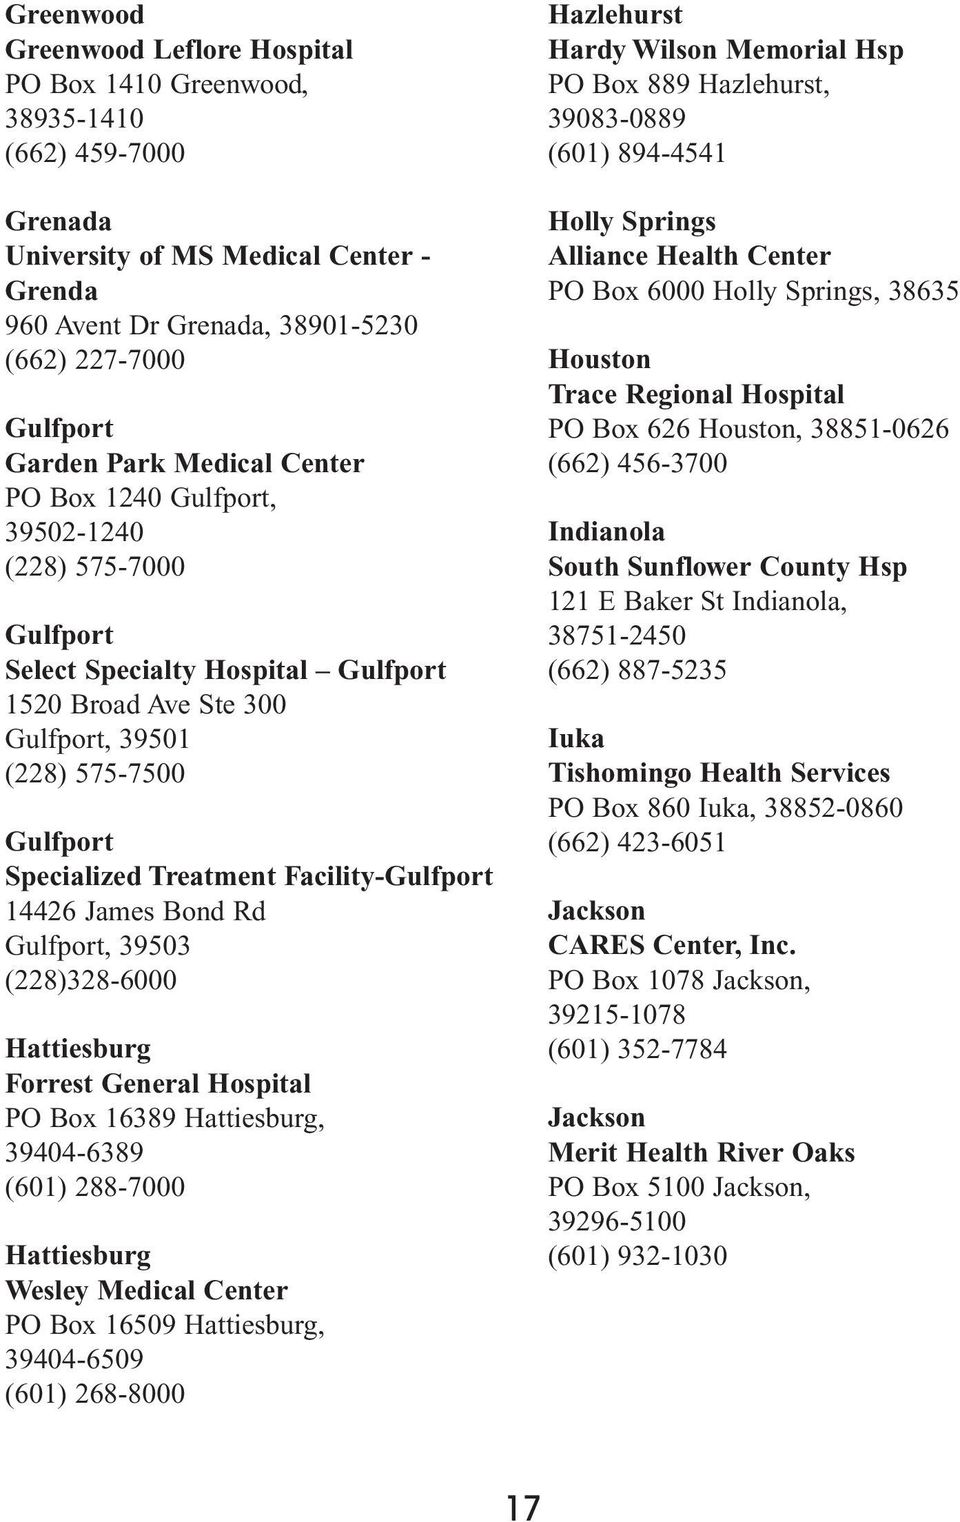 Facility-Gulfport 14426 James Bond Rd Gulfport, 39503 (228)328-6000 Hattiesburg Forrest General Hospital PO Box 16389 Hattiesburg, 39404-6389 (601) 288-7000 Hattiesburg Wesley Medical Center PO Box